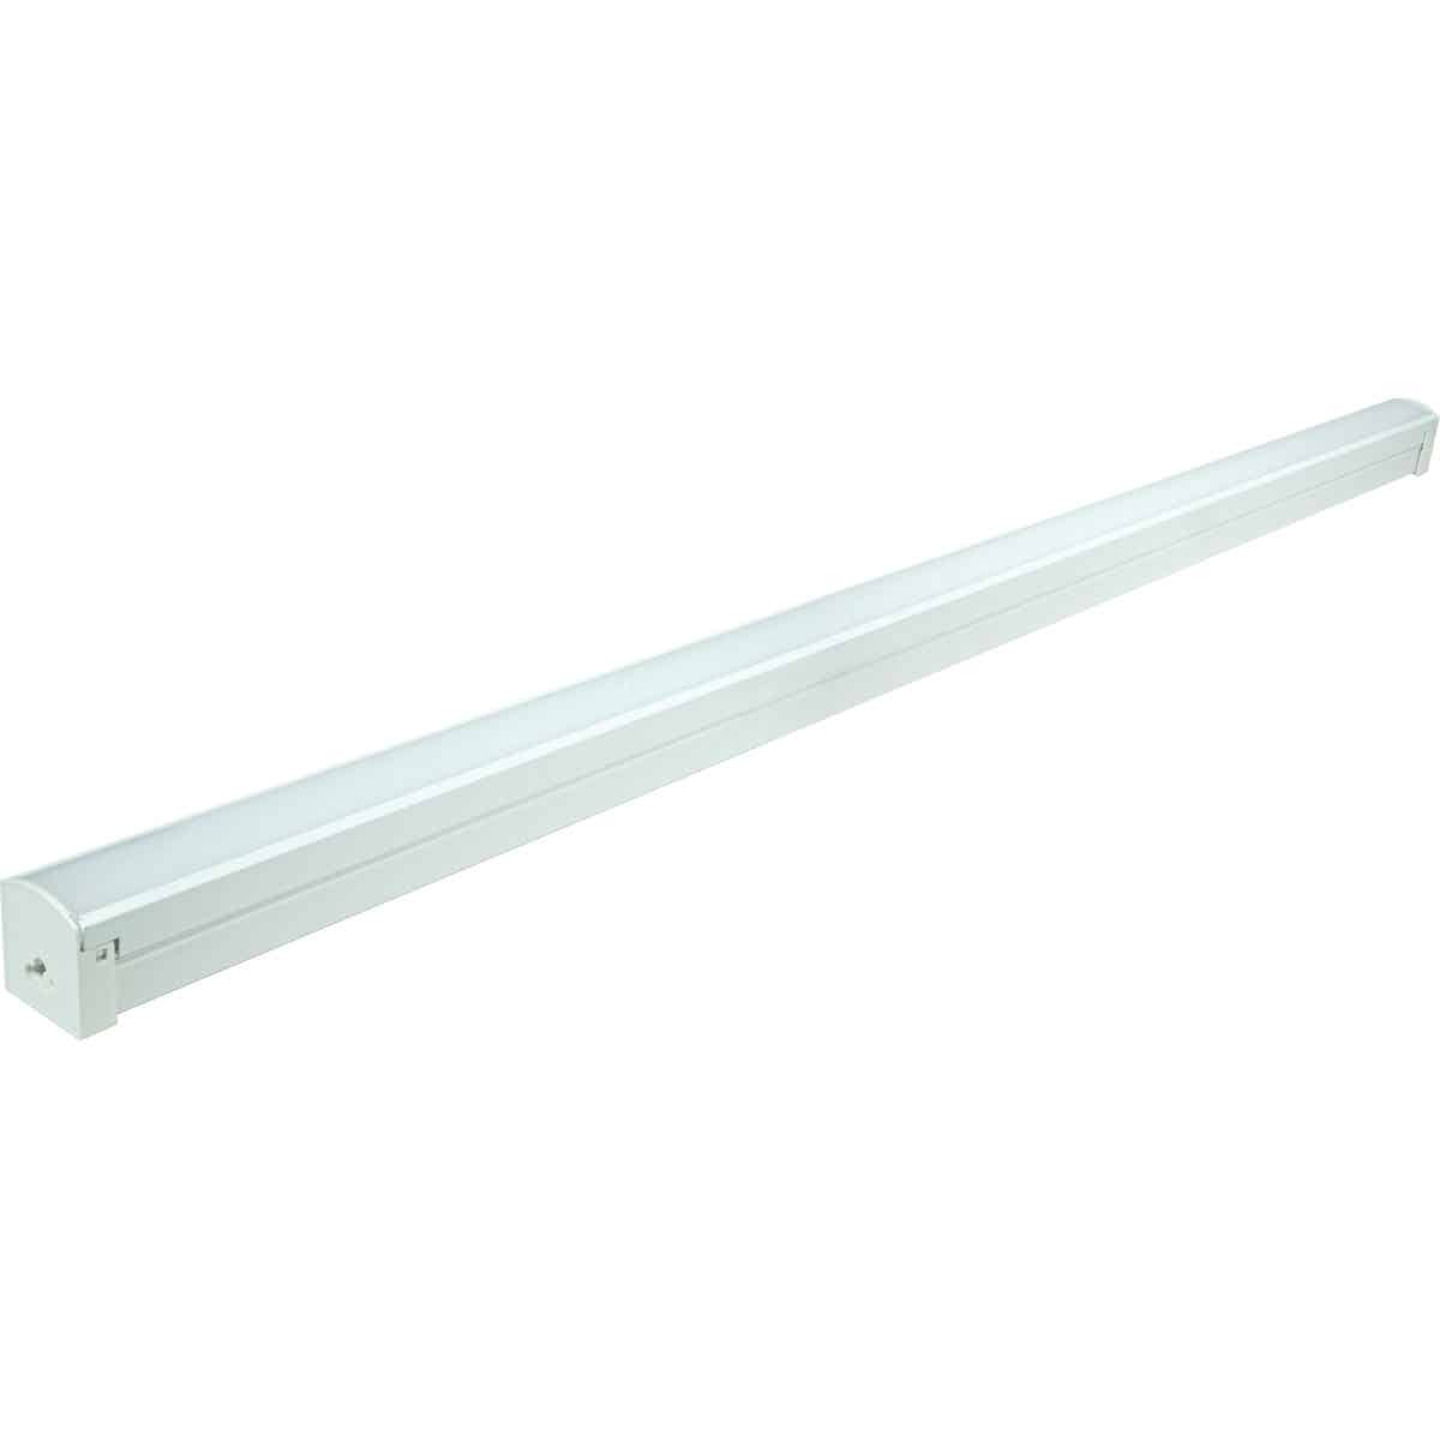 Satco Nuvo 4 Ft. LED Linkable Strip Light Fixture Image 1